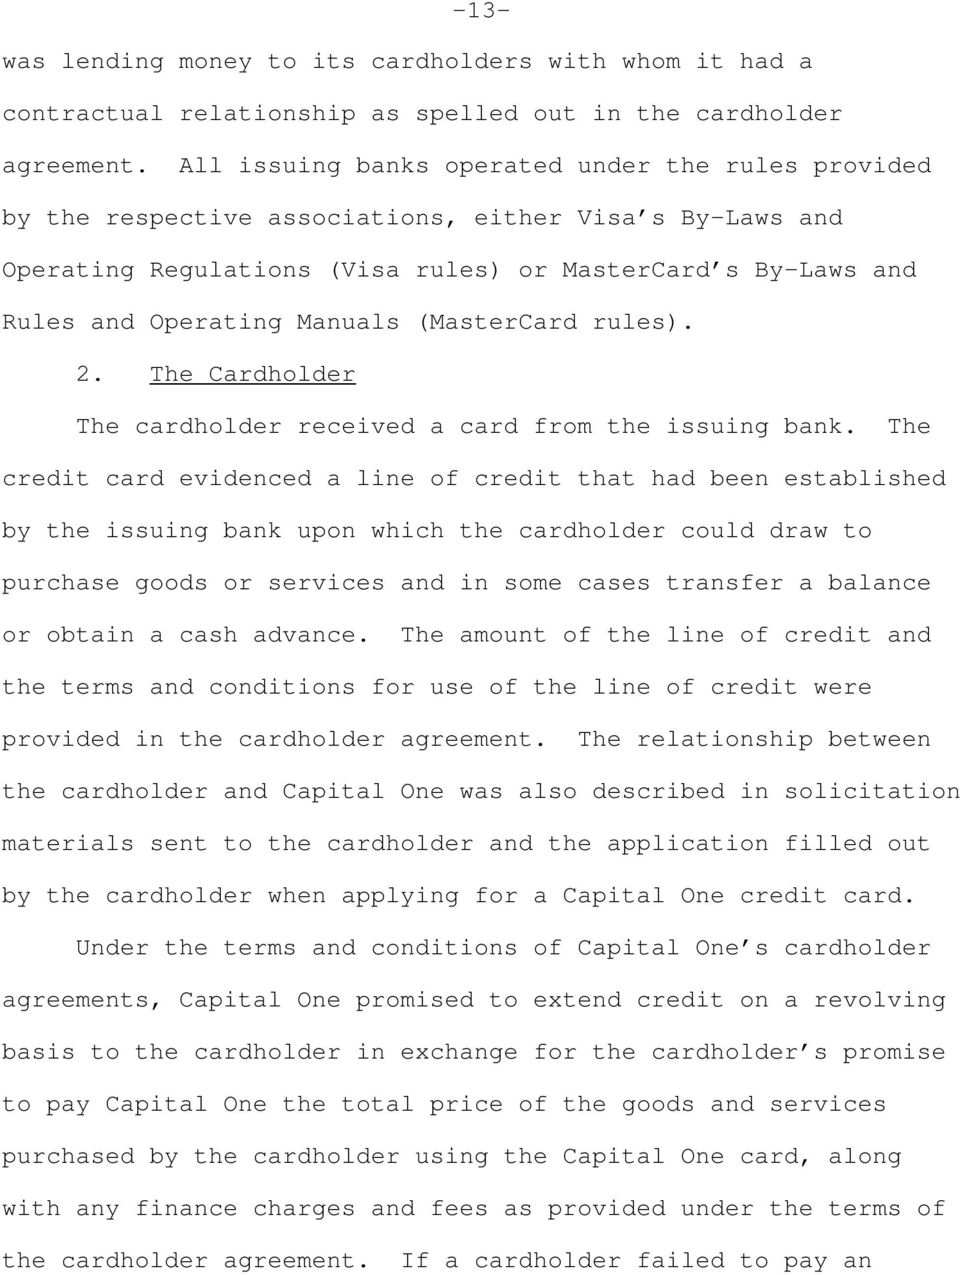 United States Tax Court Capital One Financial Corporation And